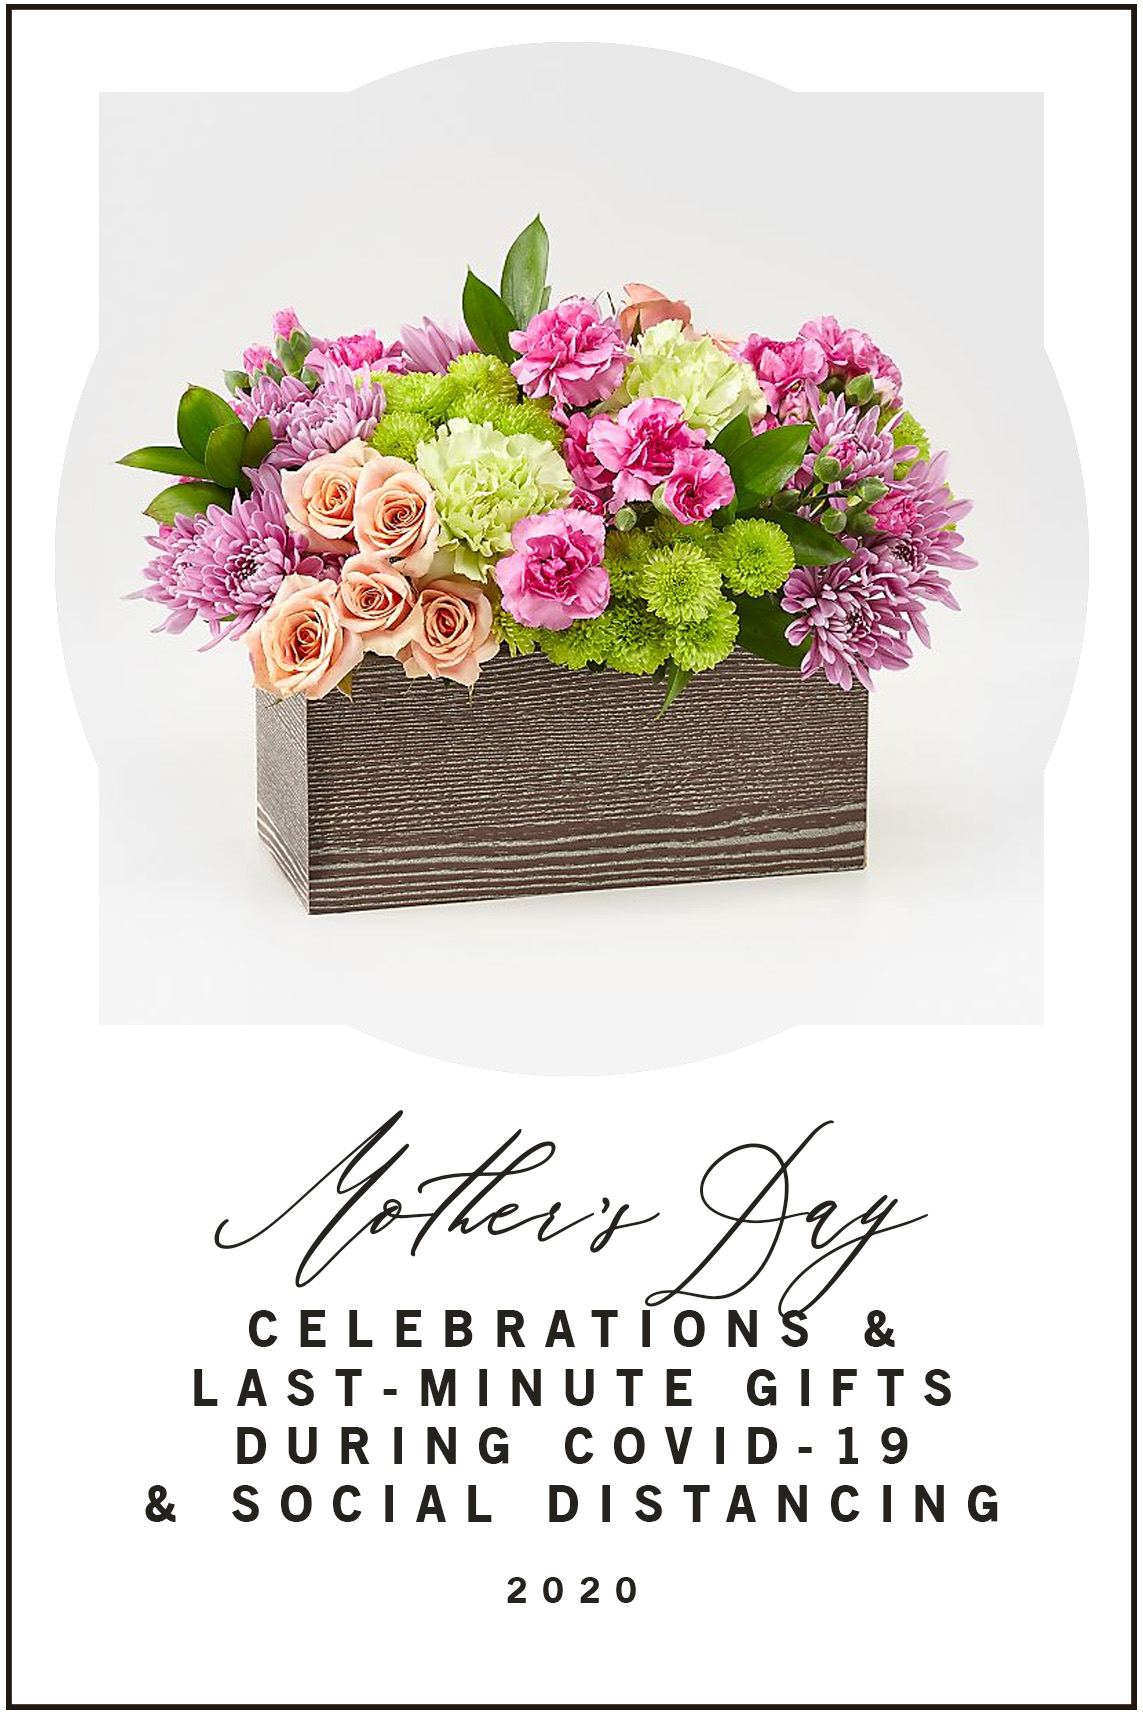 Mother's Day Celebrations and Last Minute Gifts During COVID-19 and Social Distancing 2020